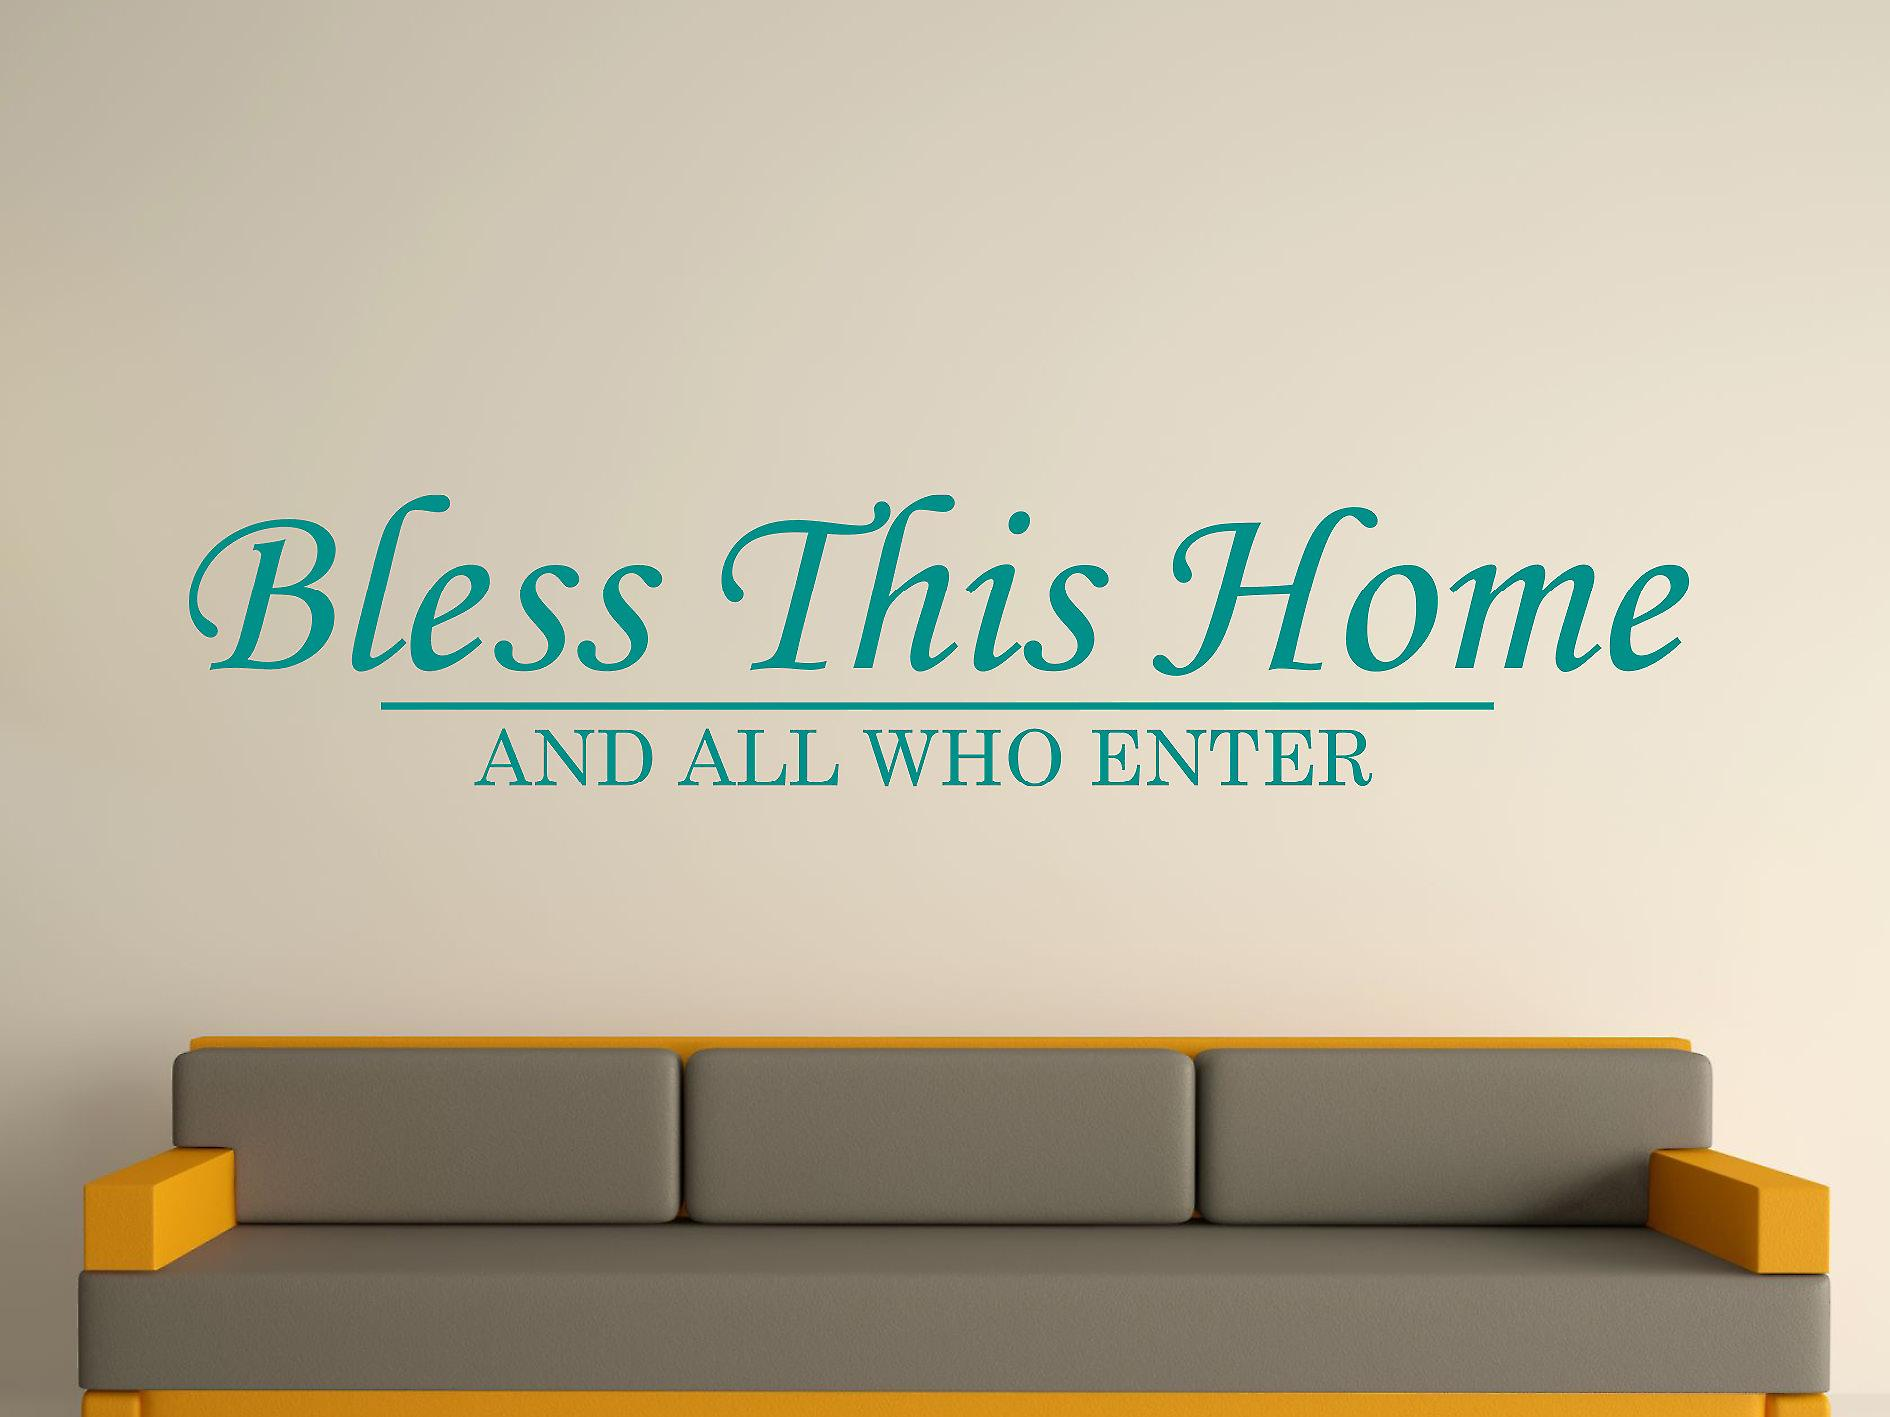 Bless This Home Wall Art Sticker - Aqua Green